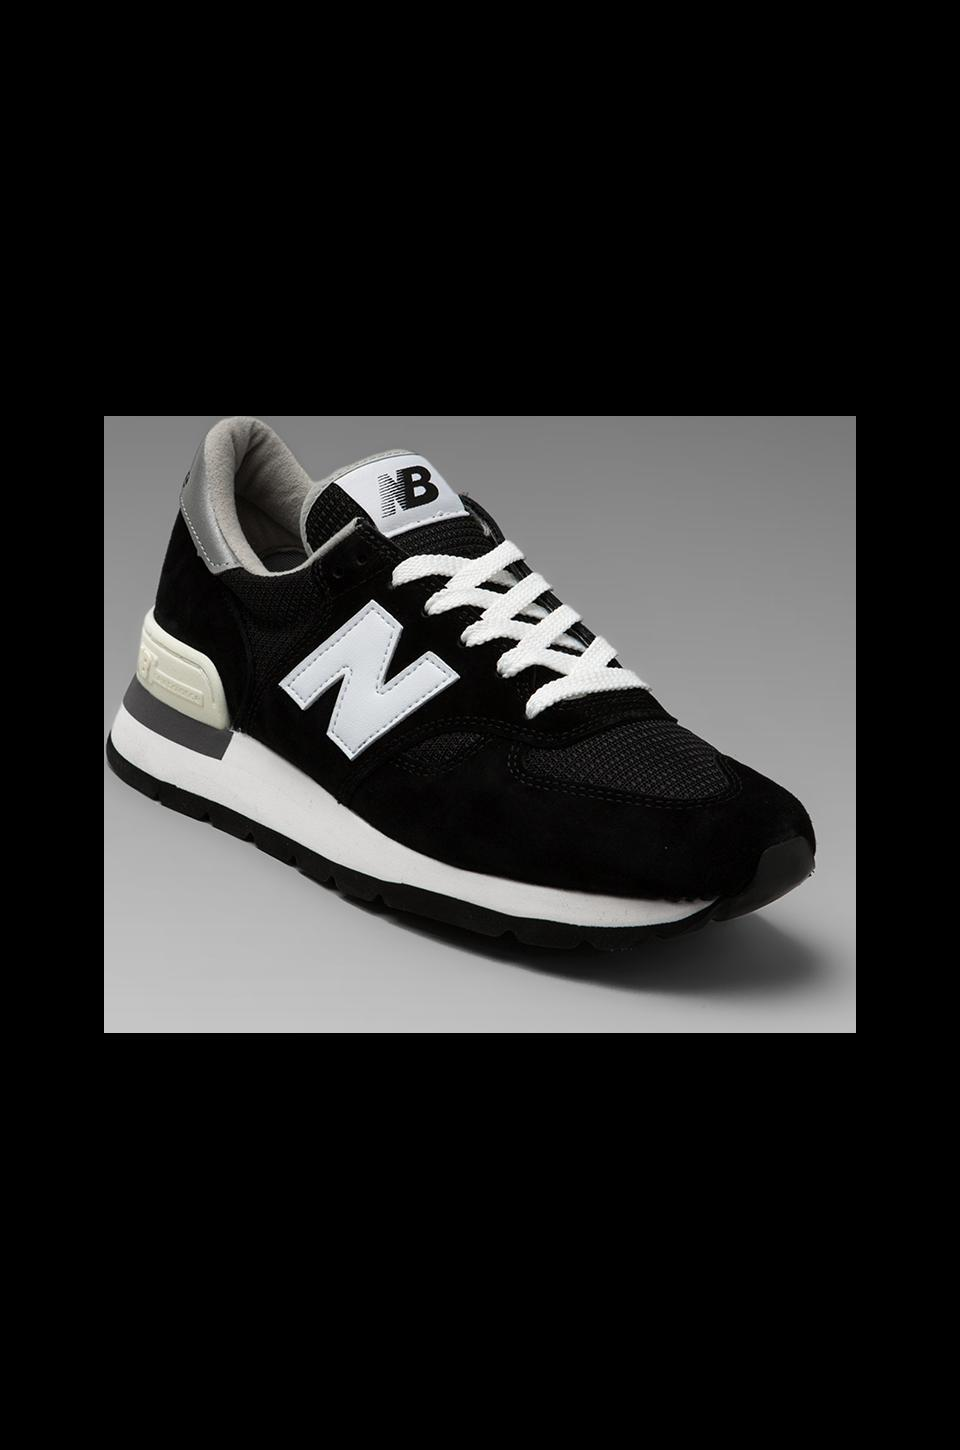 New Balance Made in the USA M990 in Black